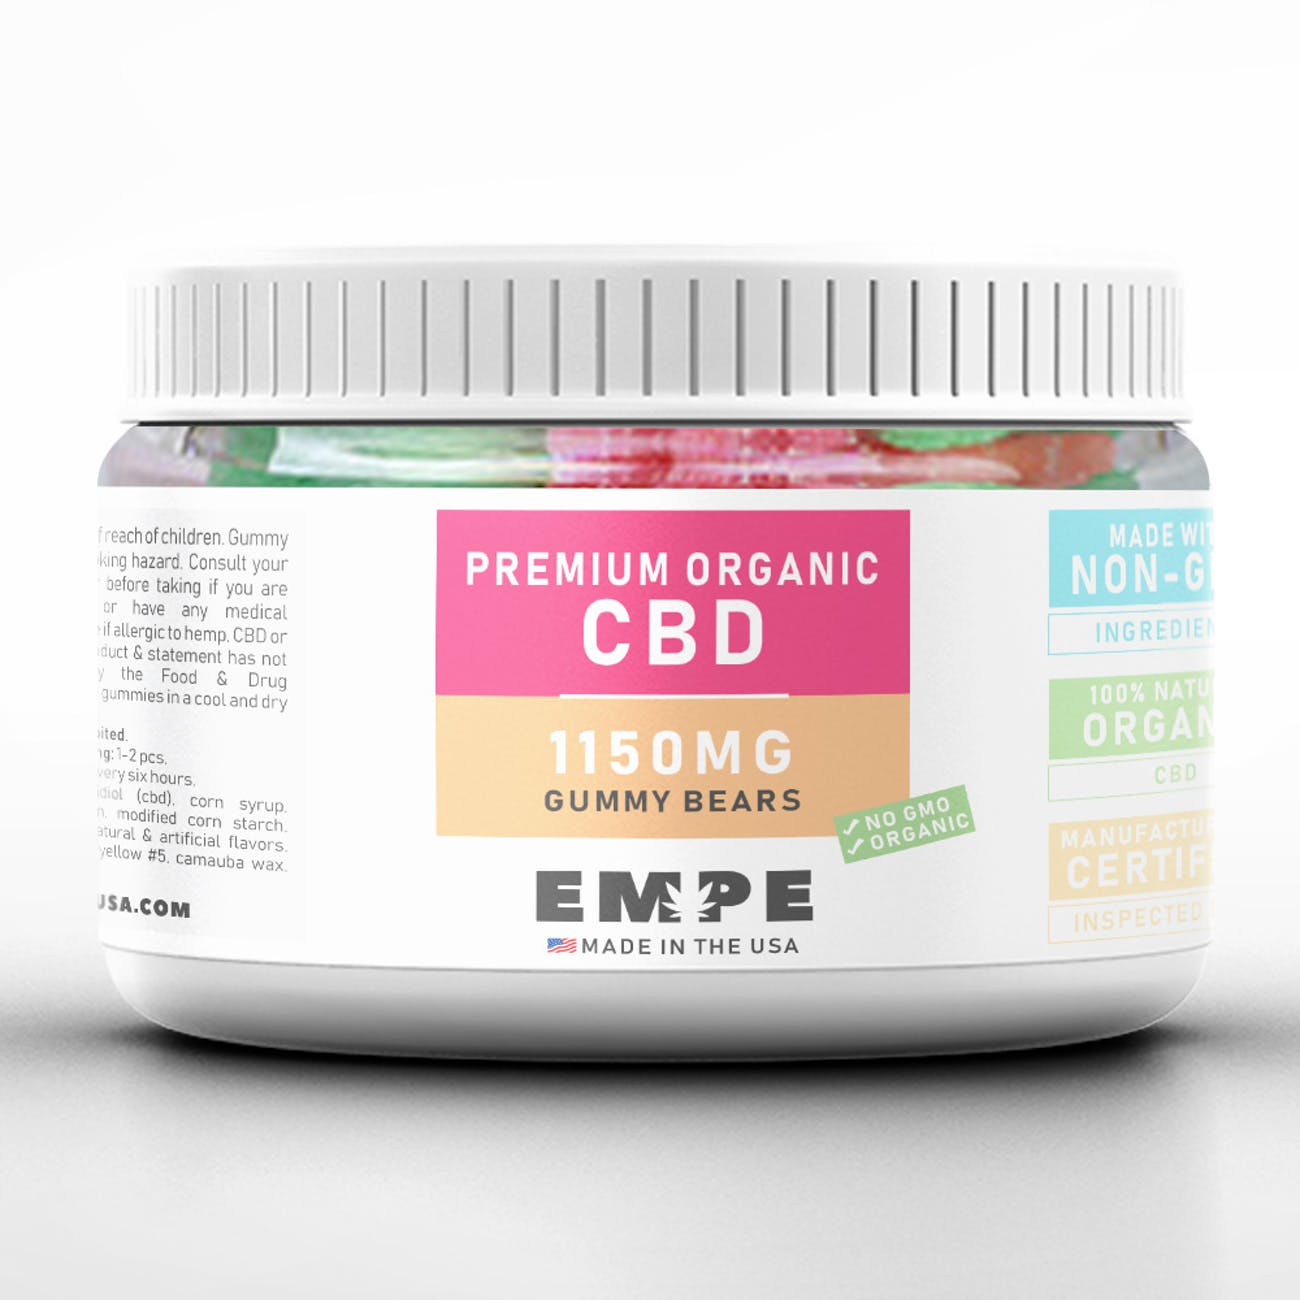 CBD Gummies From EMPE Are 25% Off With This Coupon Code